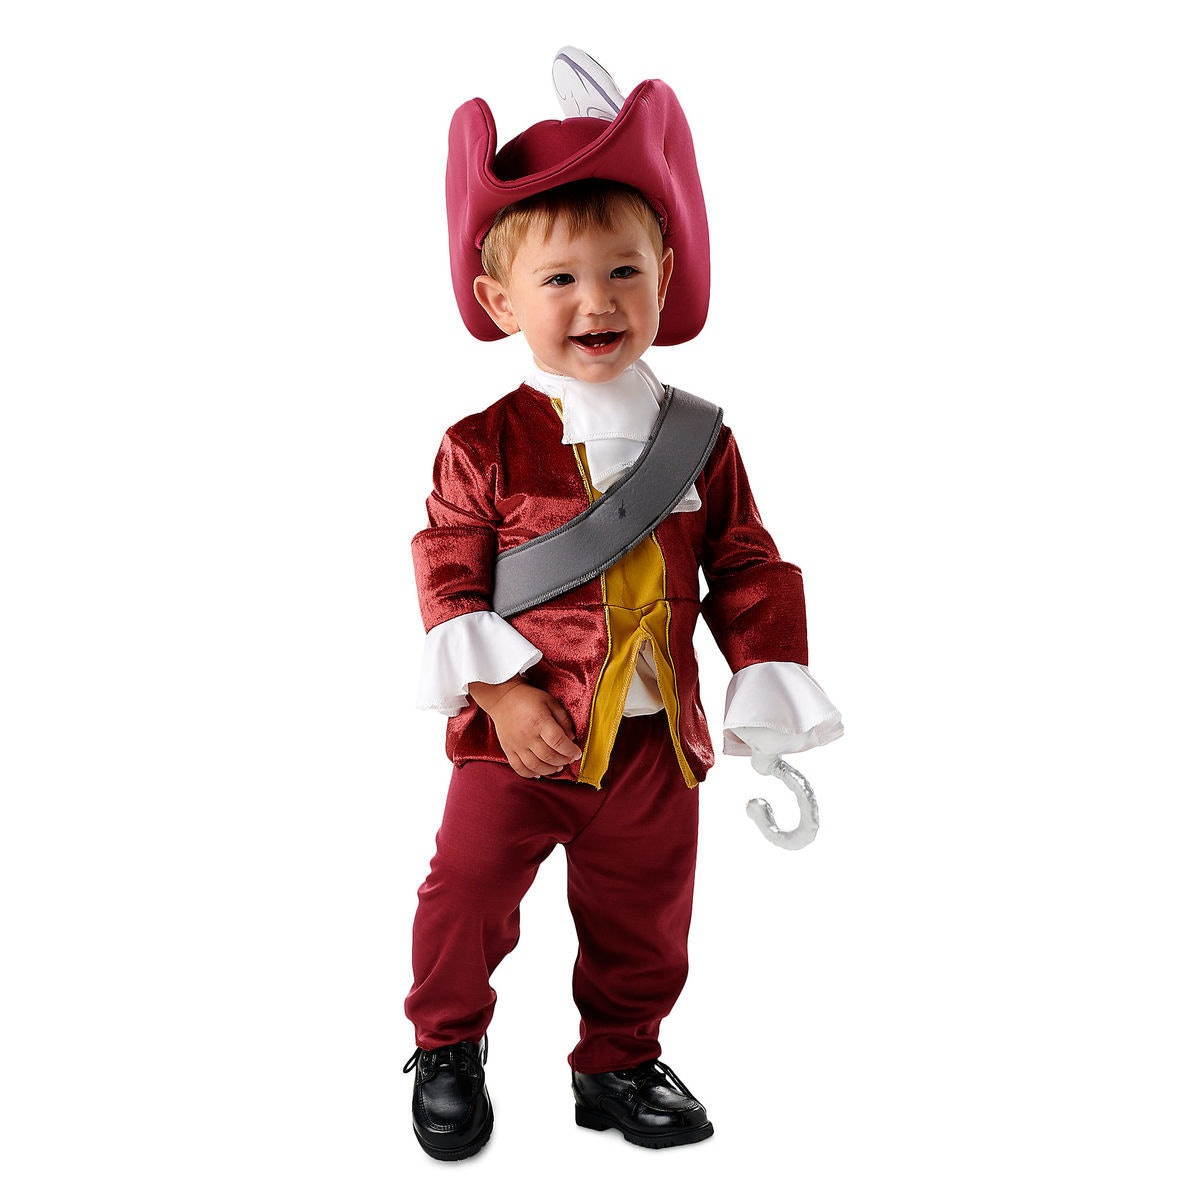 Disney\'s Baby Halloween 2018 Costumes Are Going To Make Oct. 31 The ...